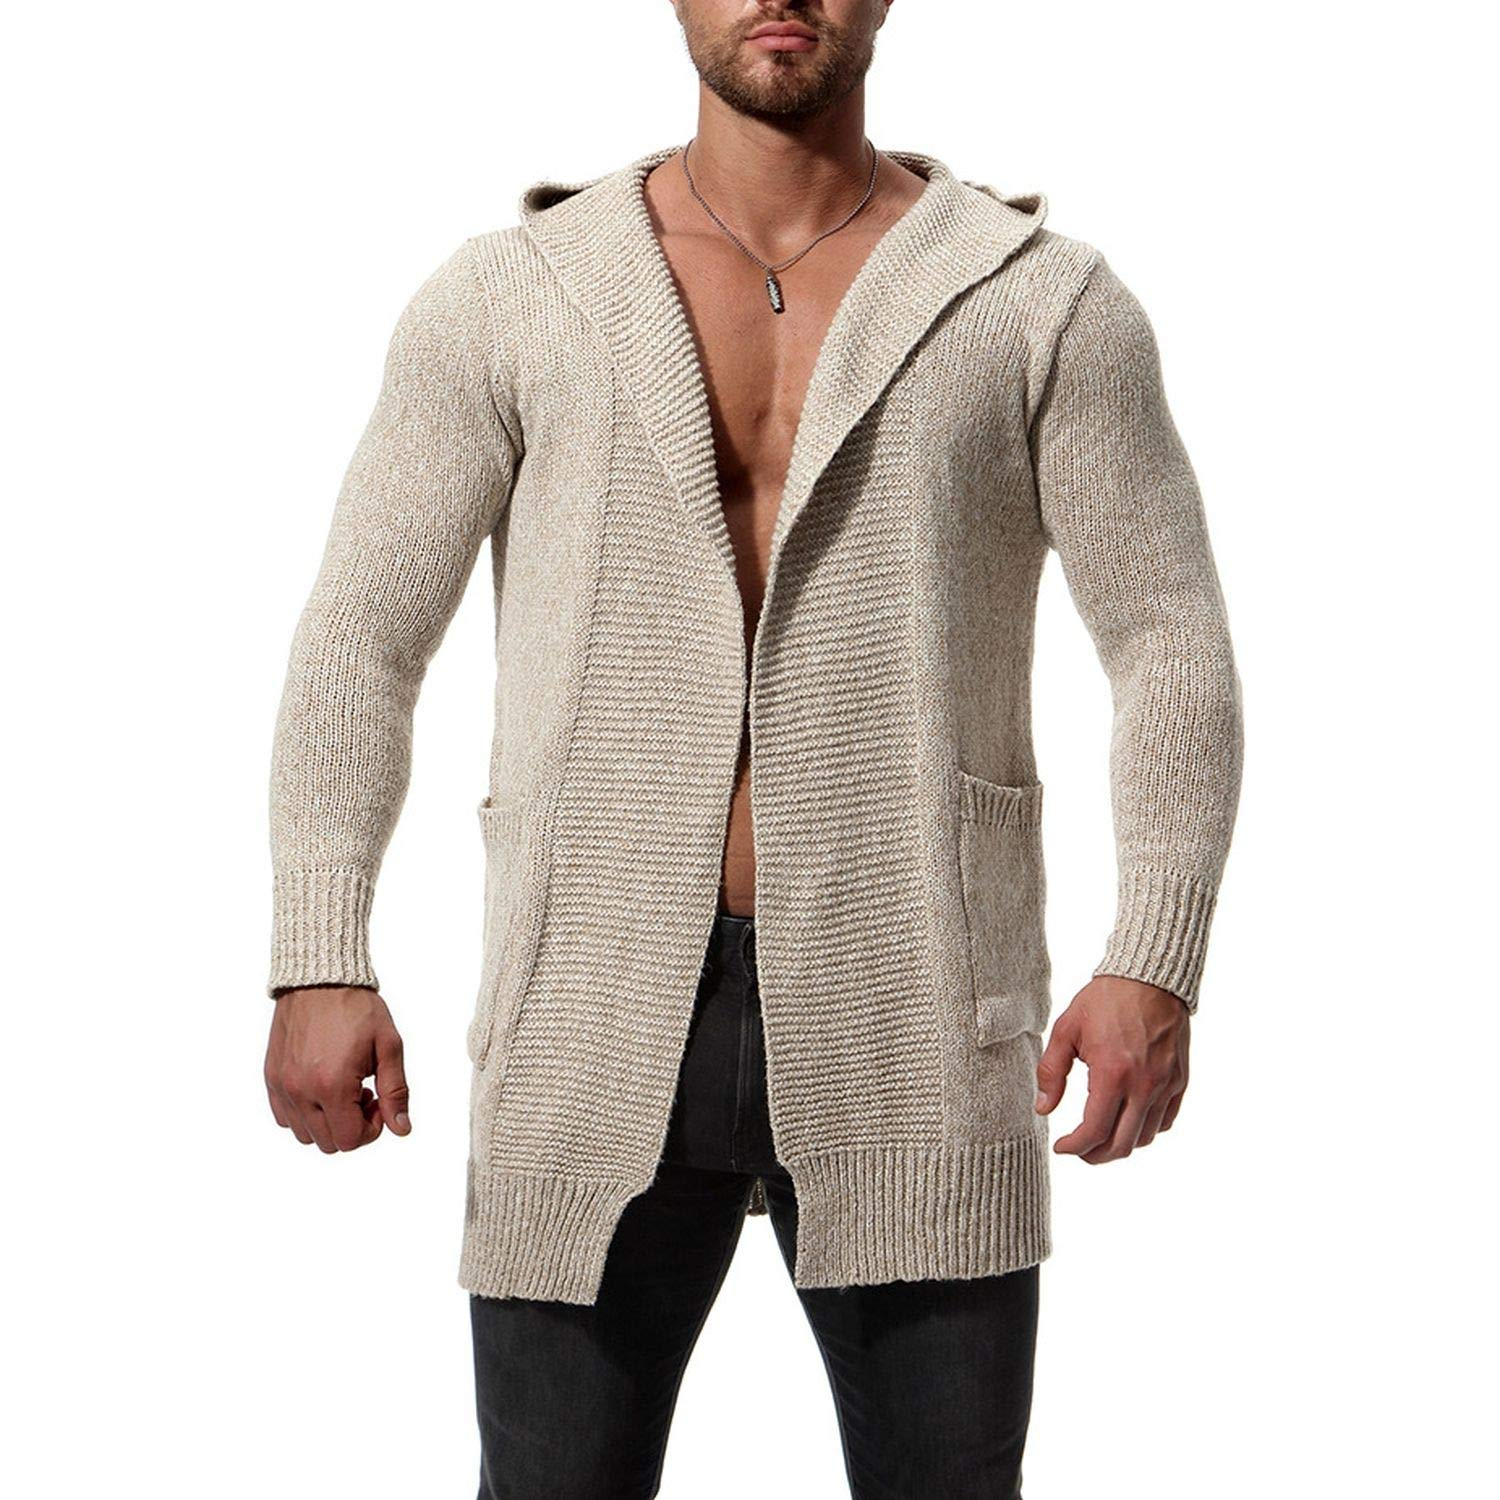 Best Rated for Winter Gift Mens Fashion Autumn Winter Warm